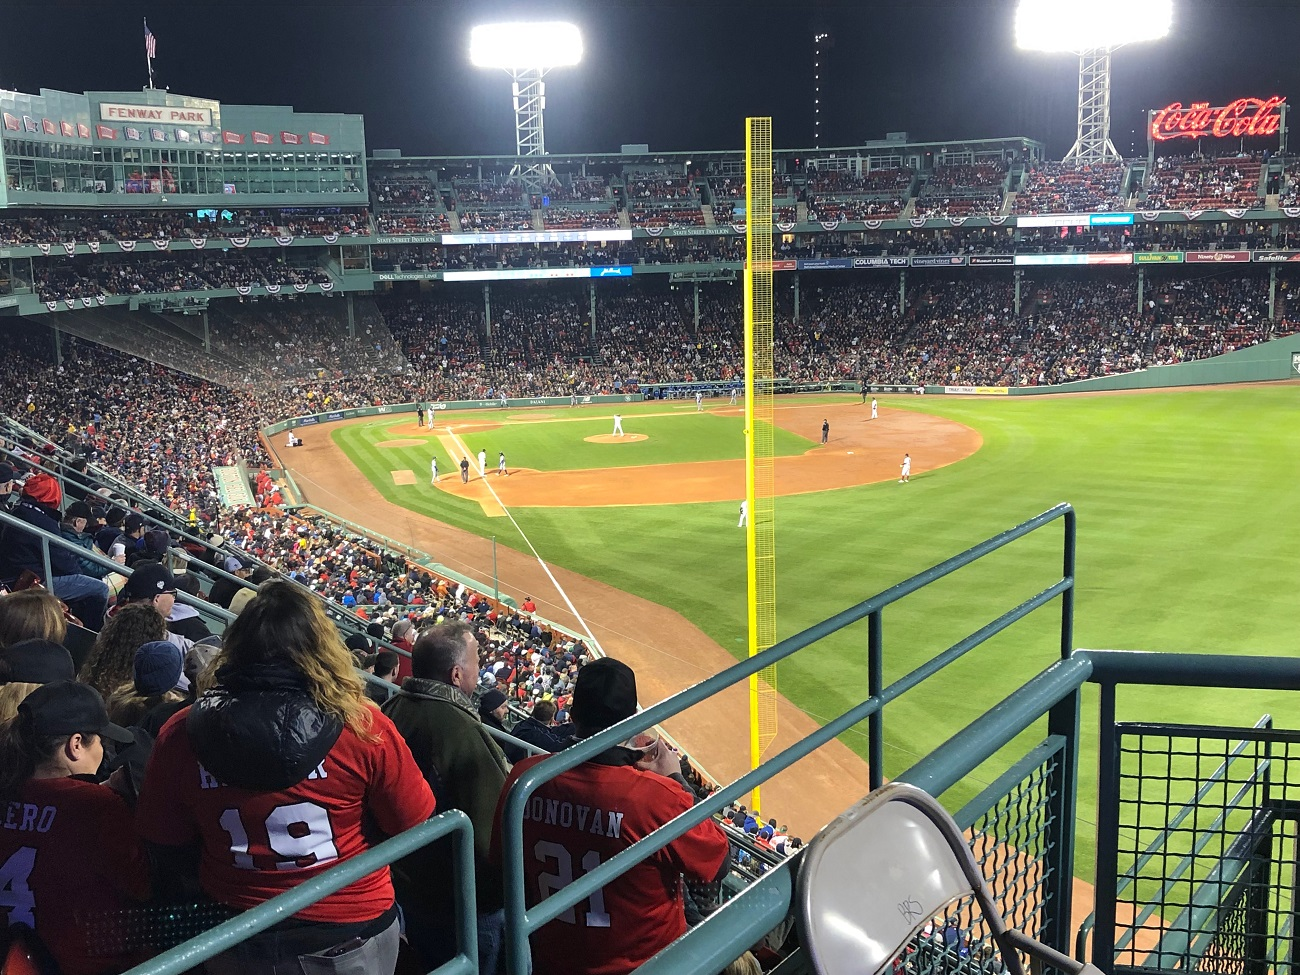 Budweiser Seats at Fenway Park